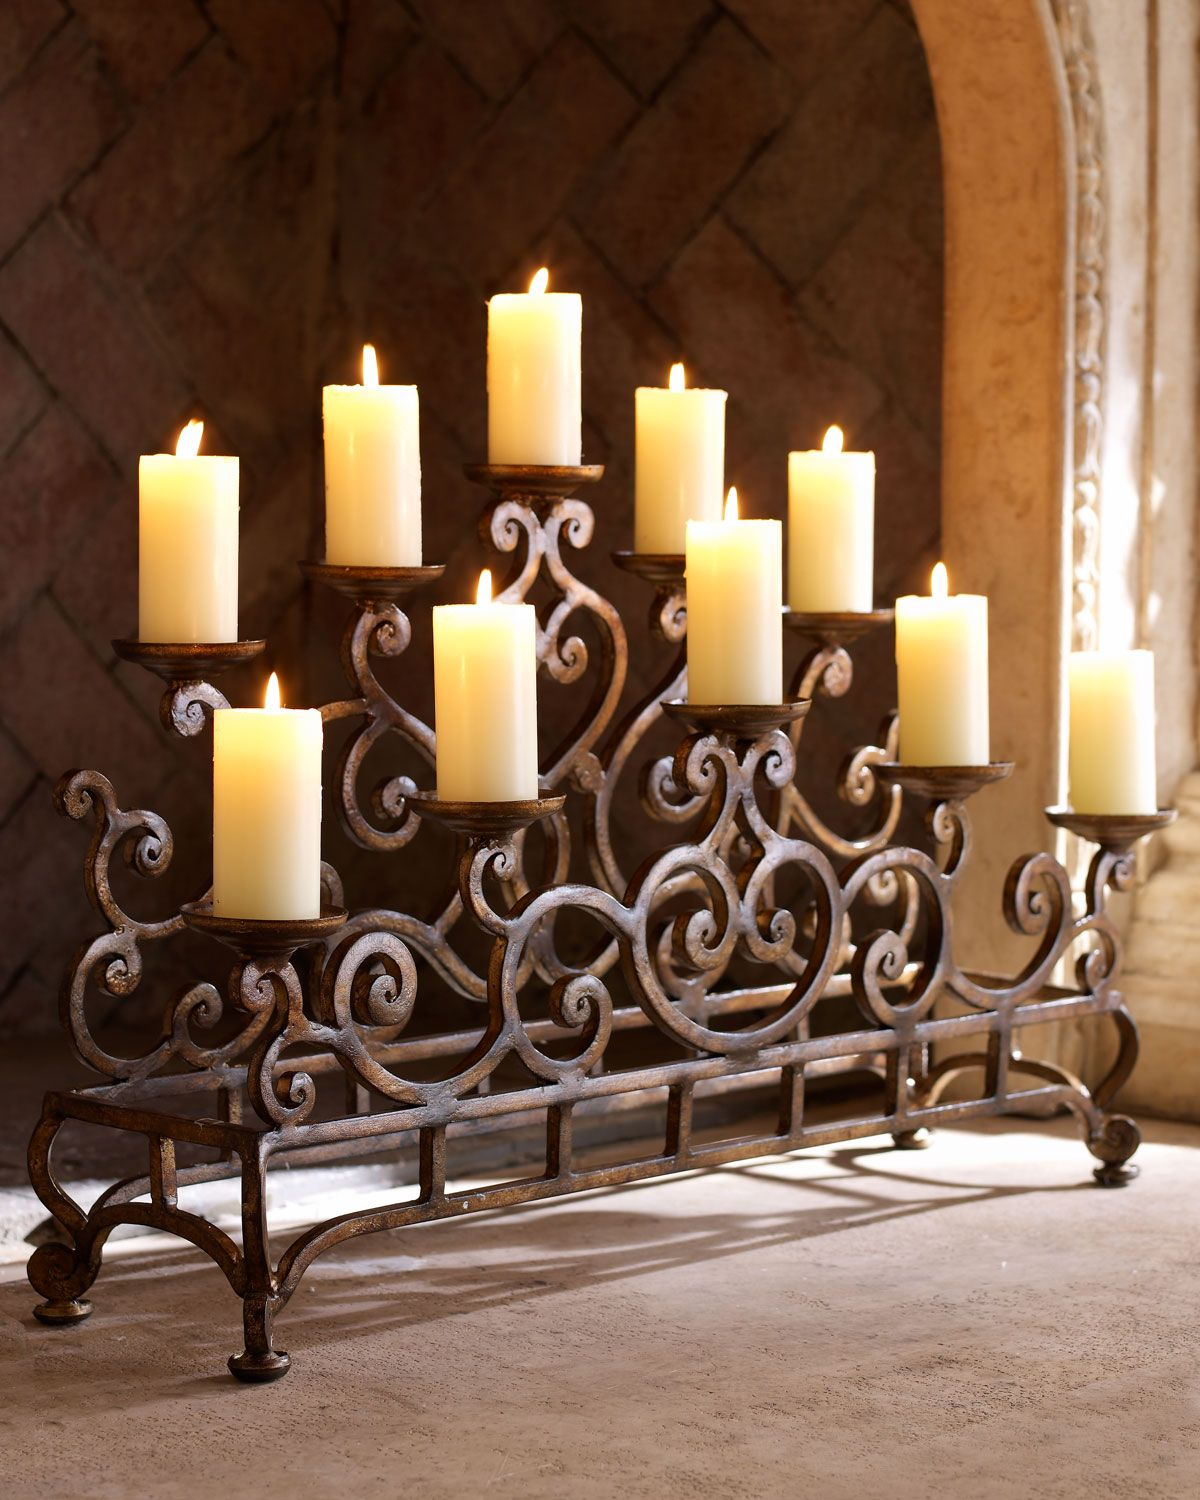 Ambella Fireplace Candelabrum Candles In Fireplace Fireplace Candelabra Small Fireplace Fireplace screen candle holder